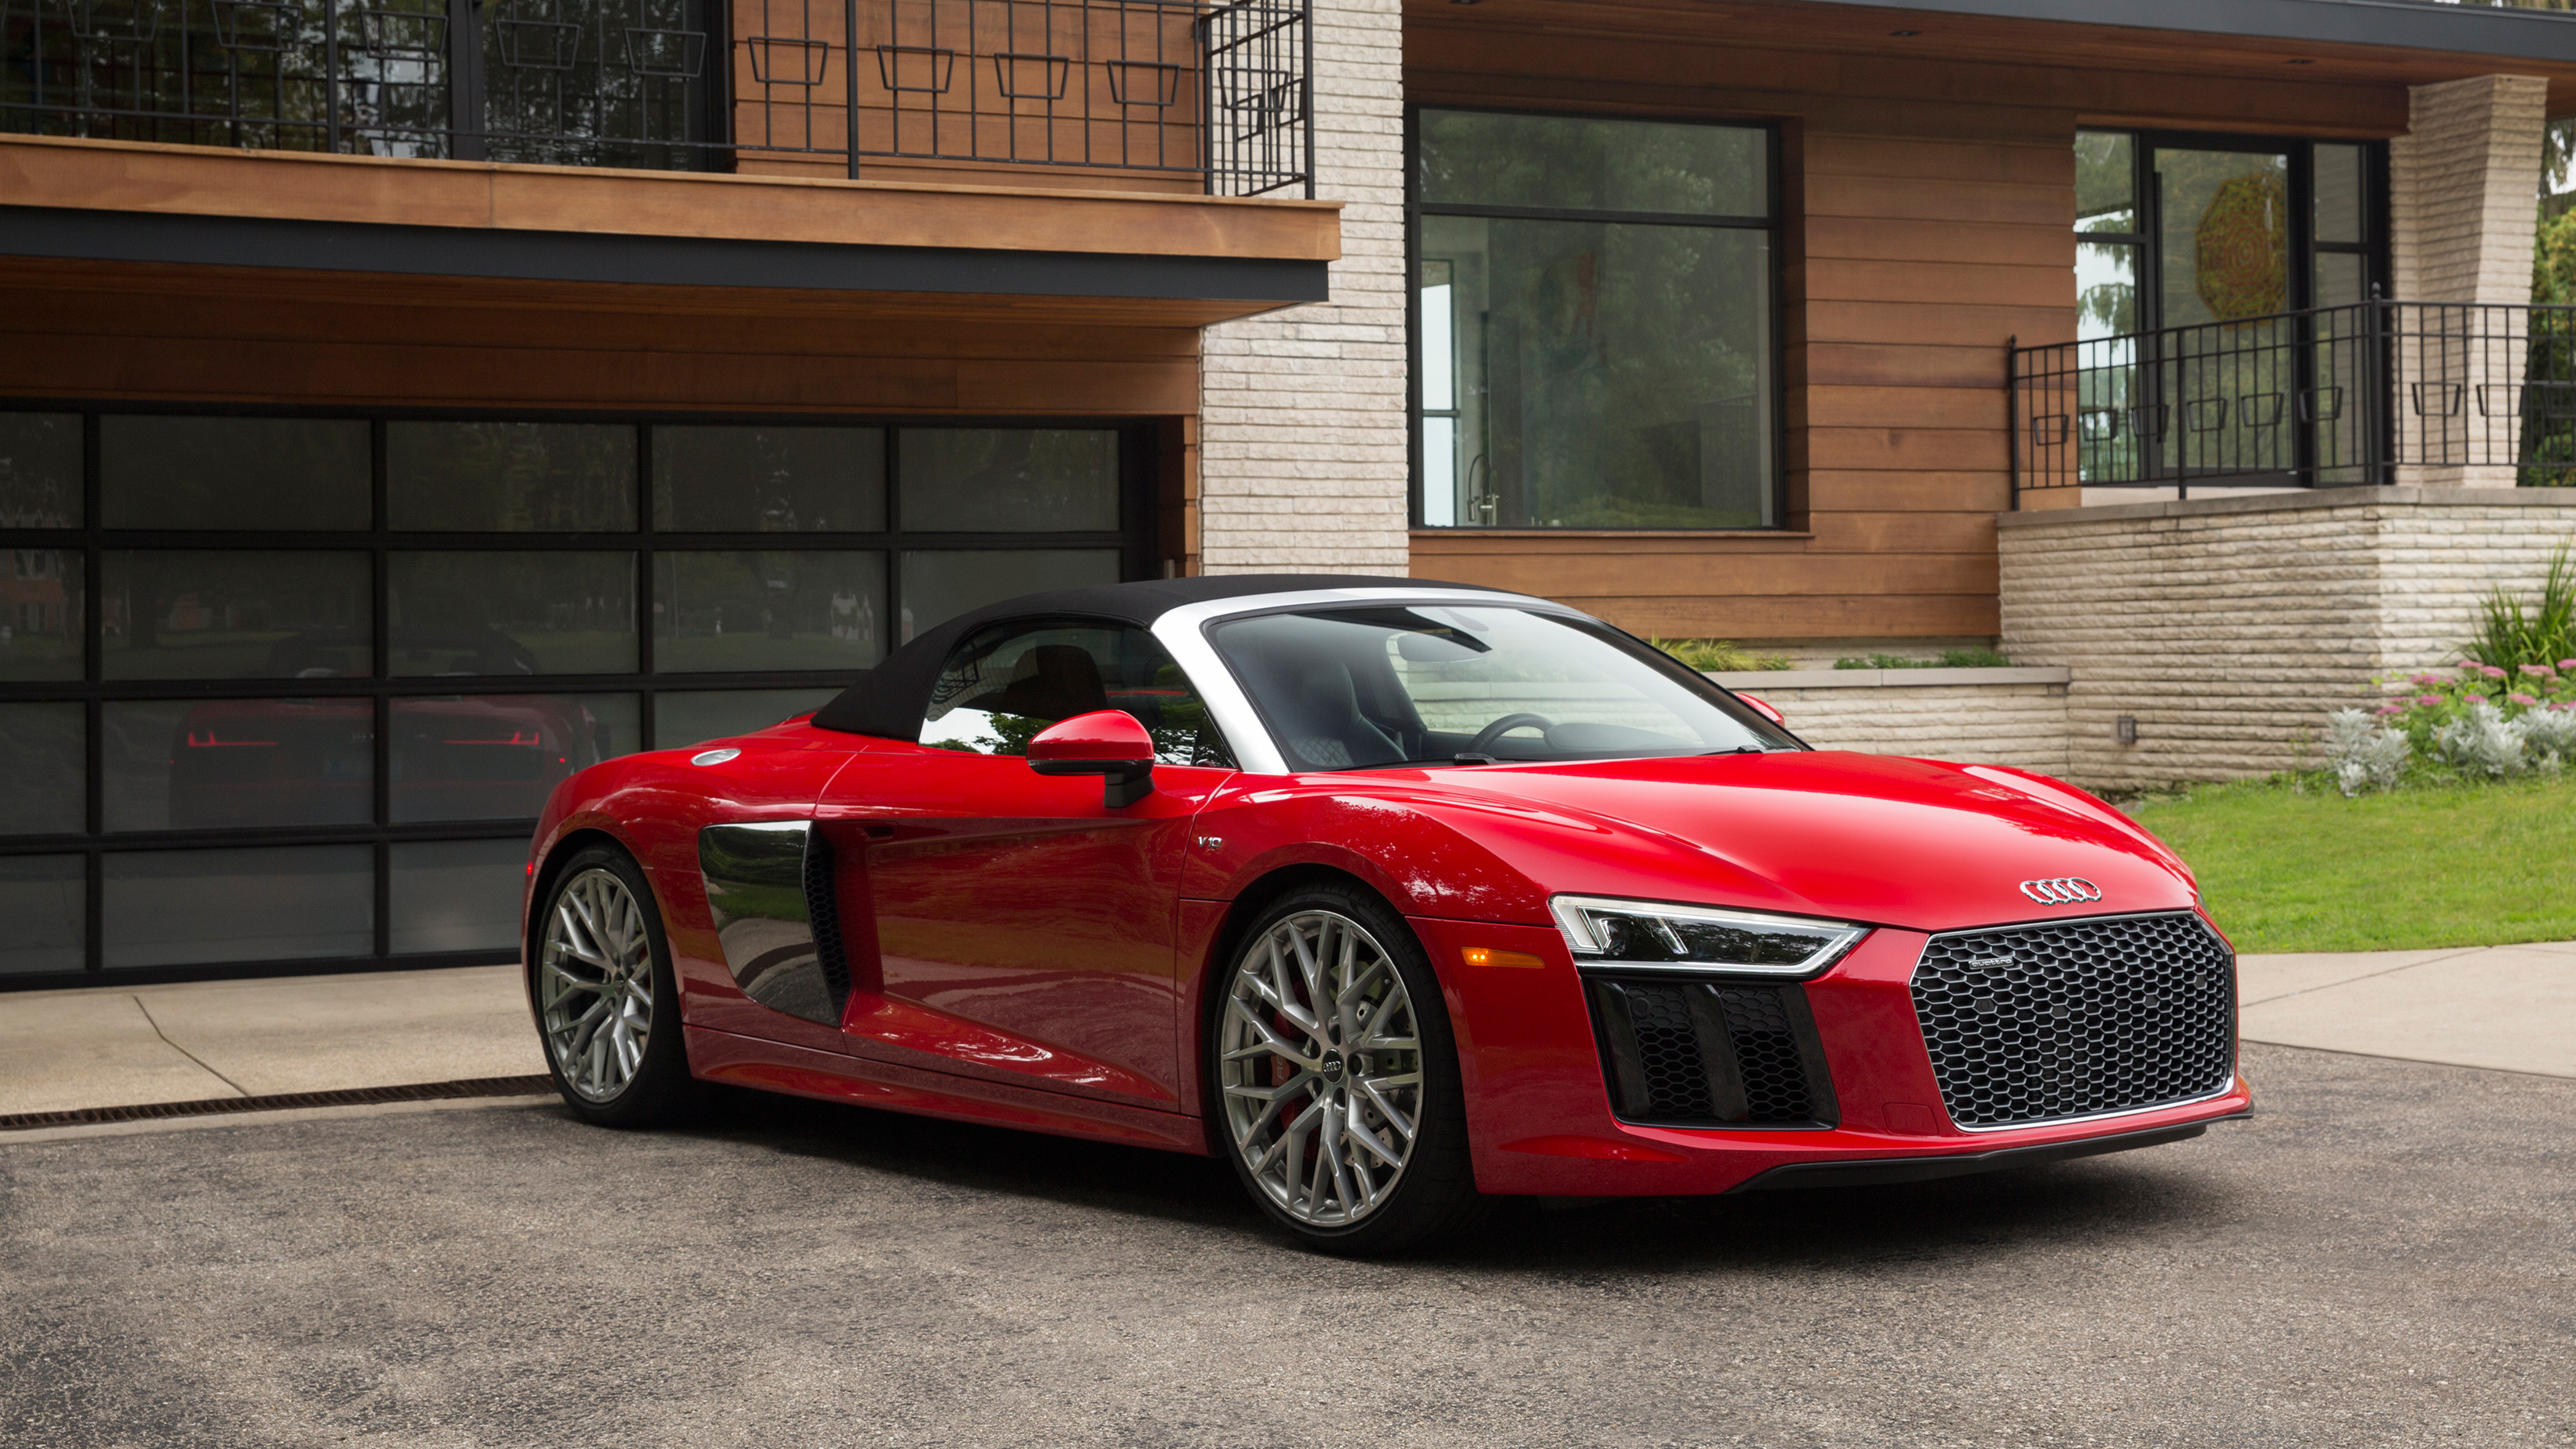 2018 audi r8 spyder v10 plus wallpaper hd car wallpapers. Black Bedroom Furniture Sets. Home Design Ideas